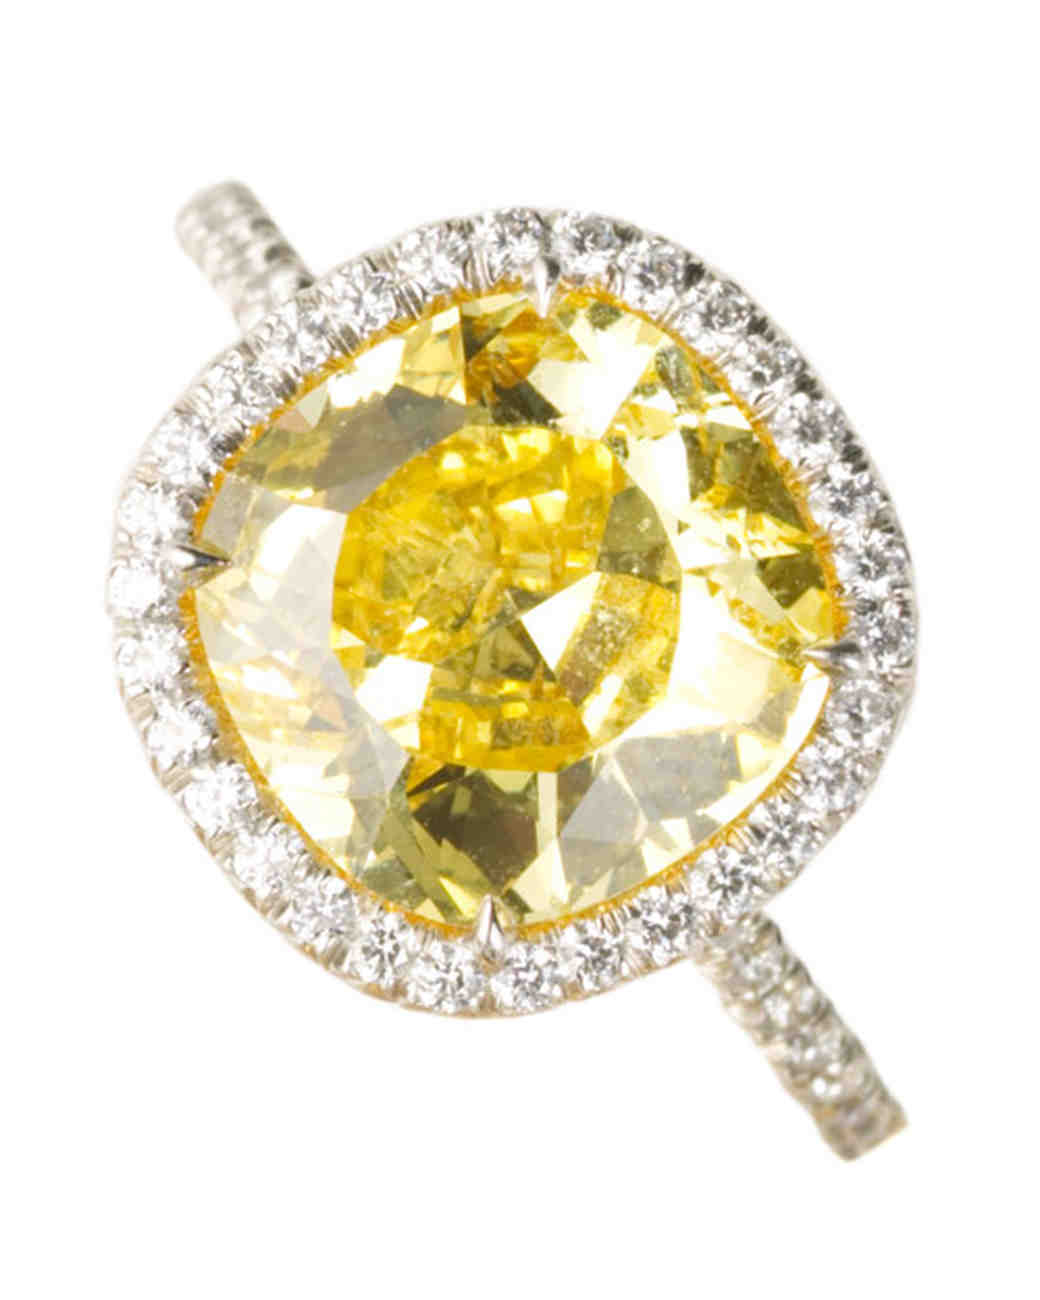 yellow diamond engagement rings martha stewart weddings - Yellow Diamond Wedding Rings